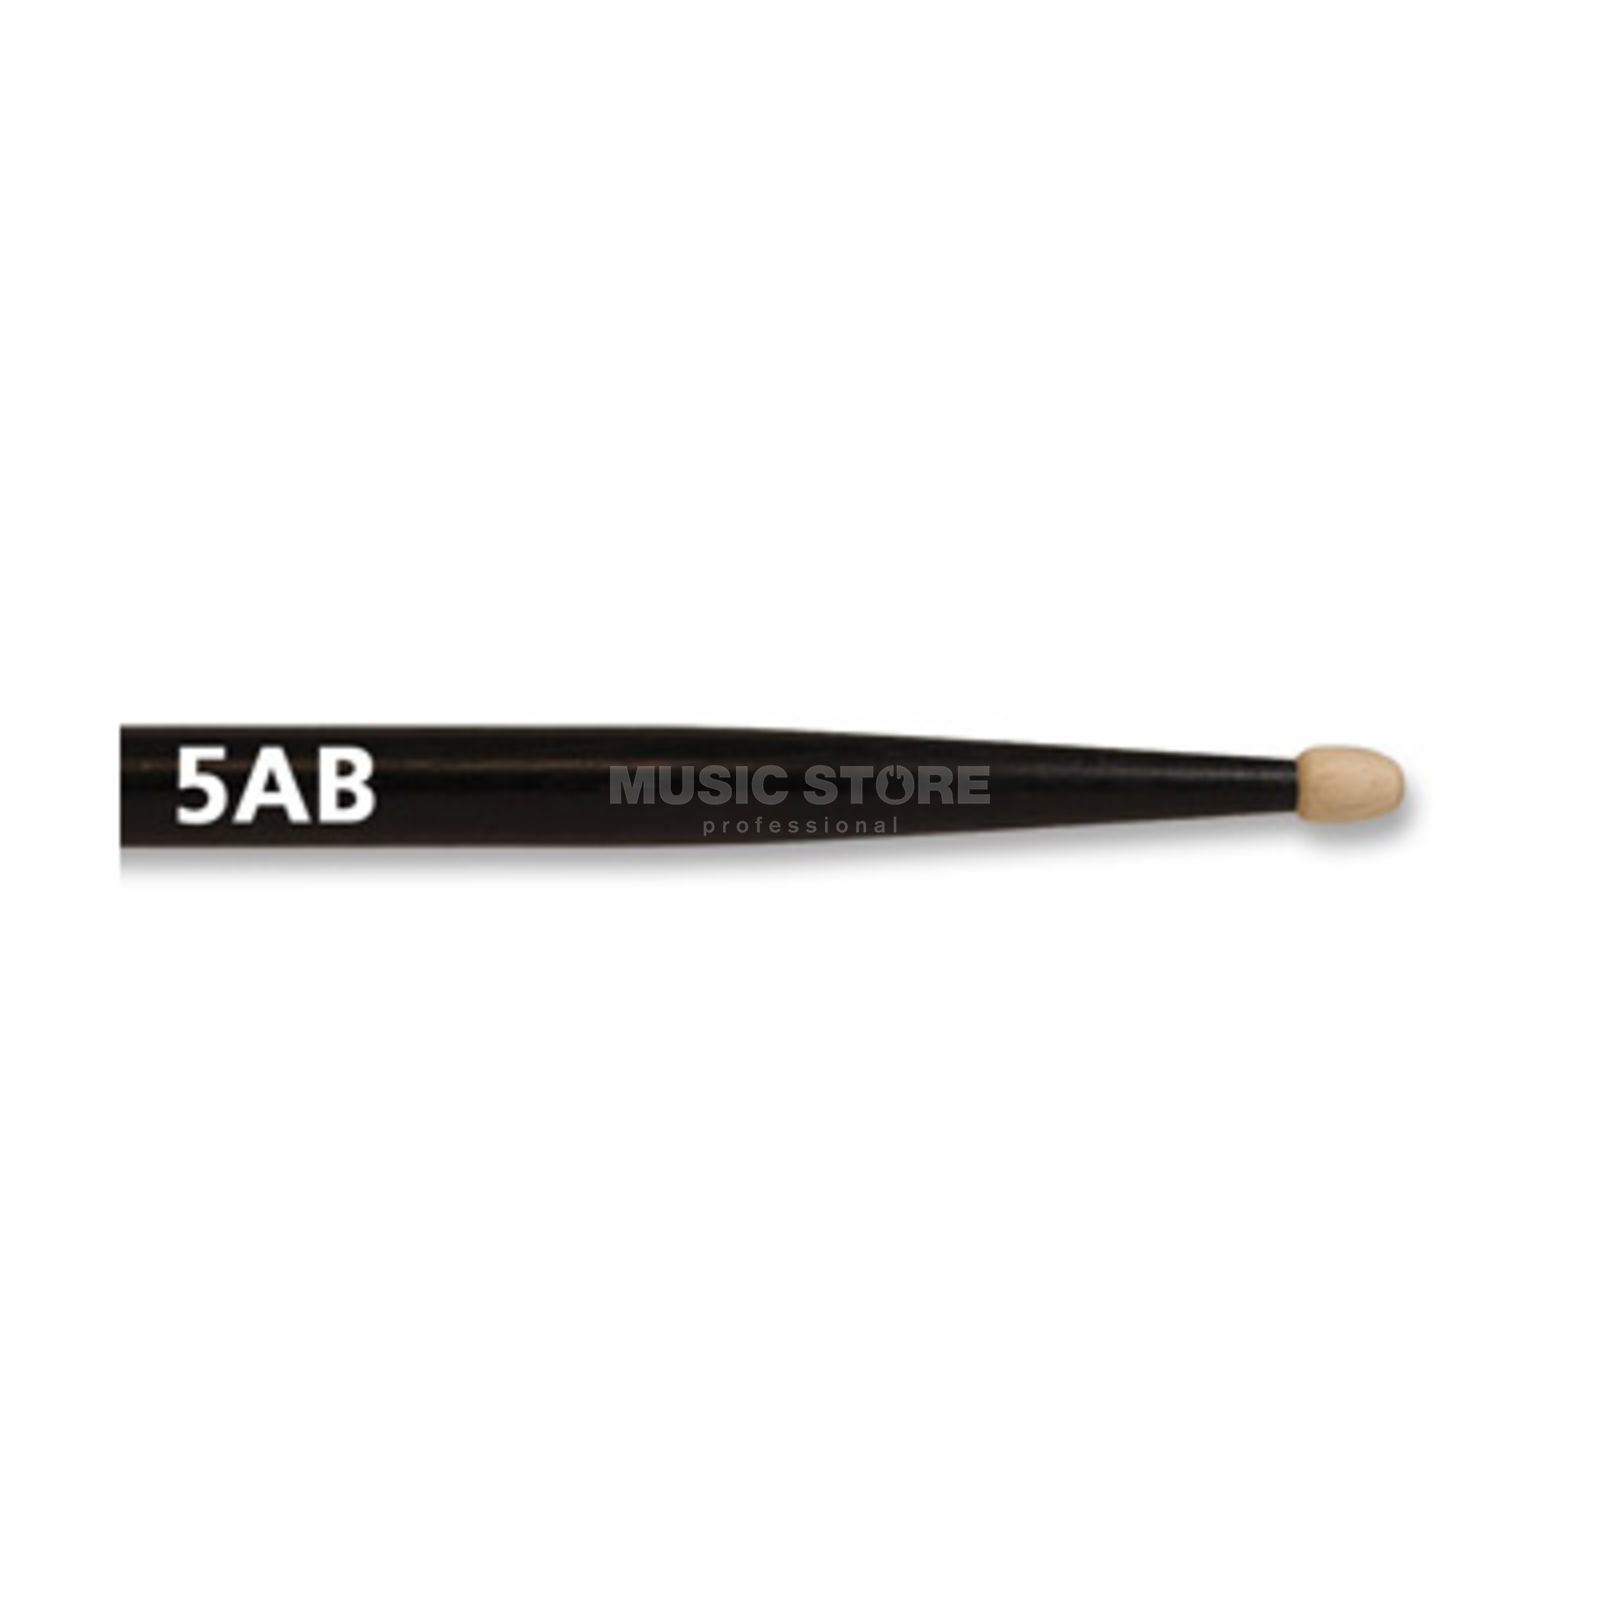 Vic-Firth 5AB Sticks, Black American Classic, Wood Tip Produktbillede